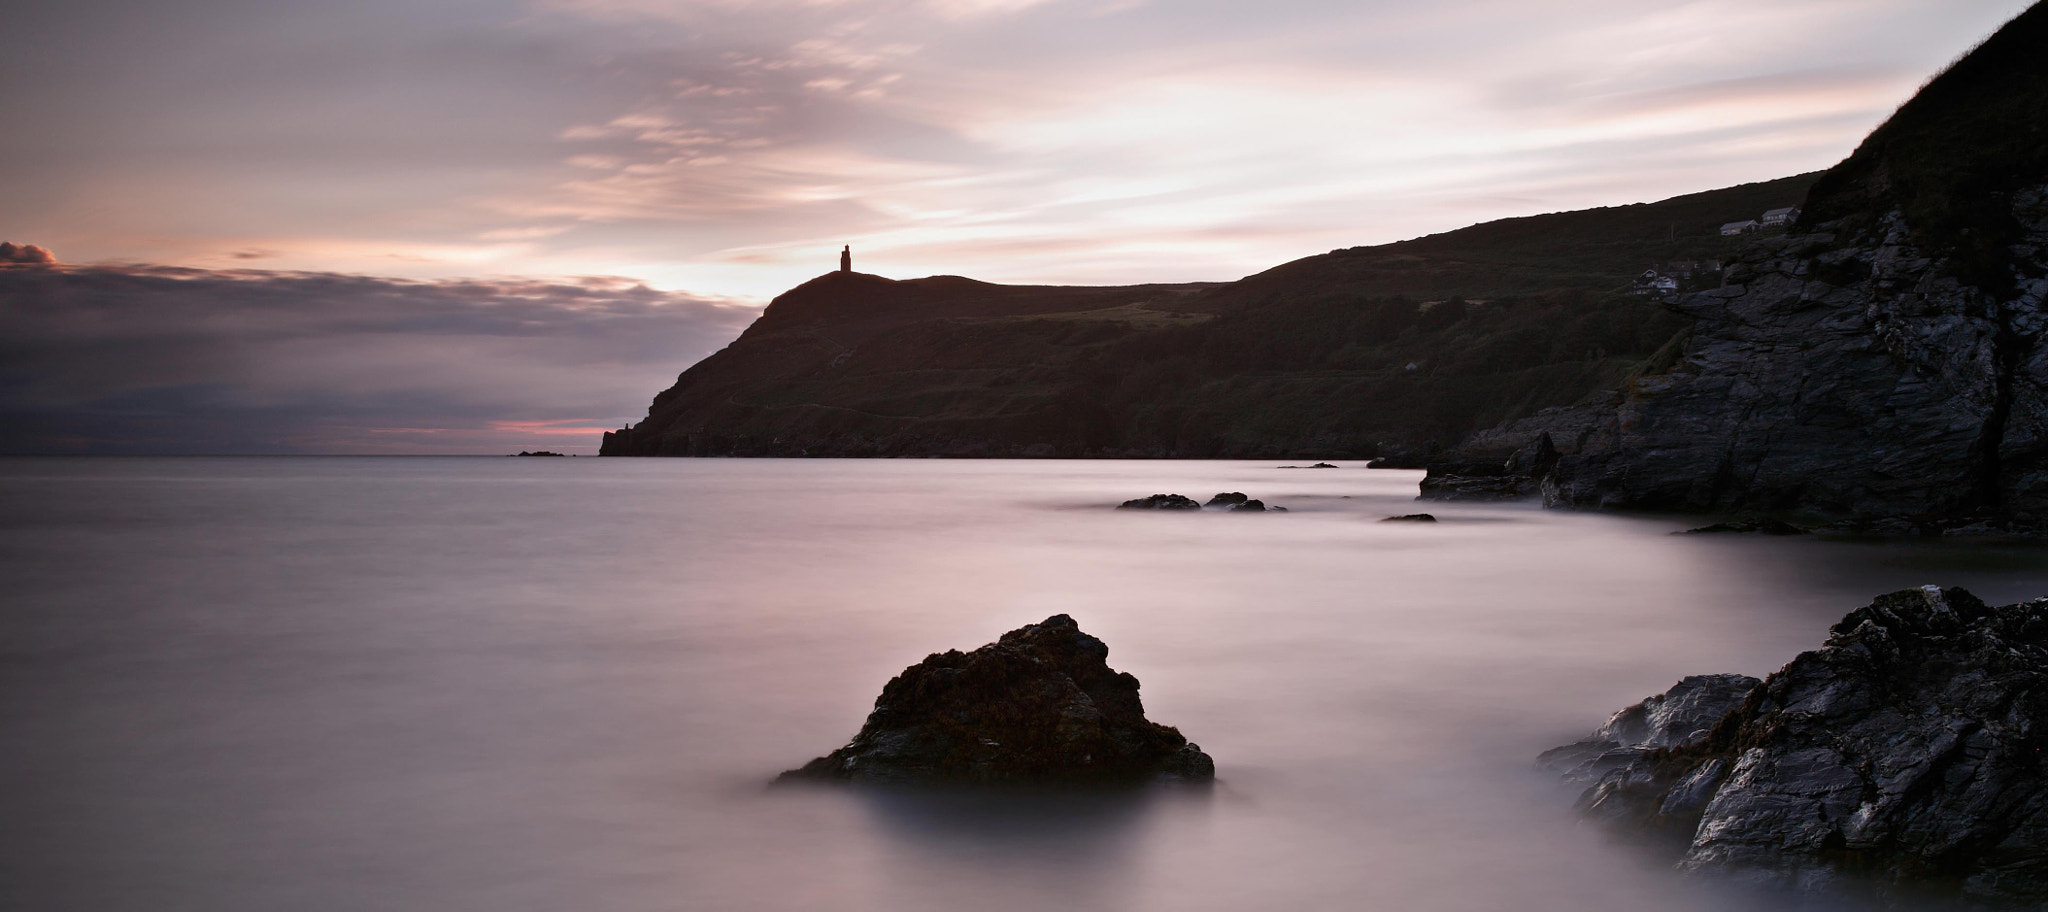 Photograph Bradda Head, The Isle Of Man by Russell Turner on 500px